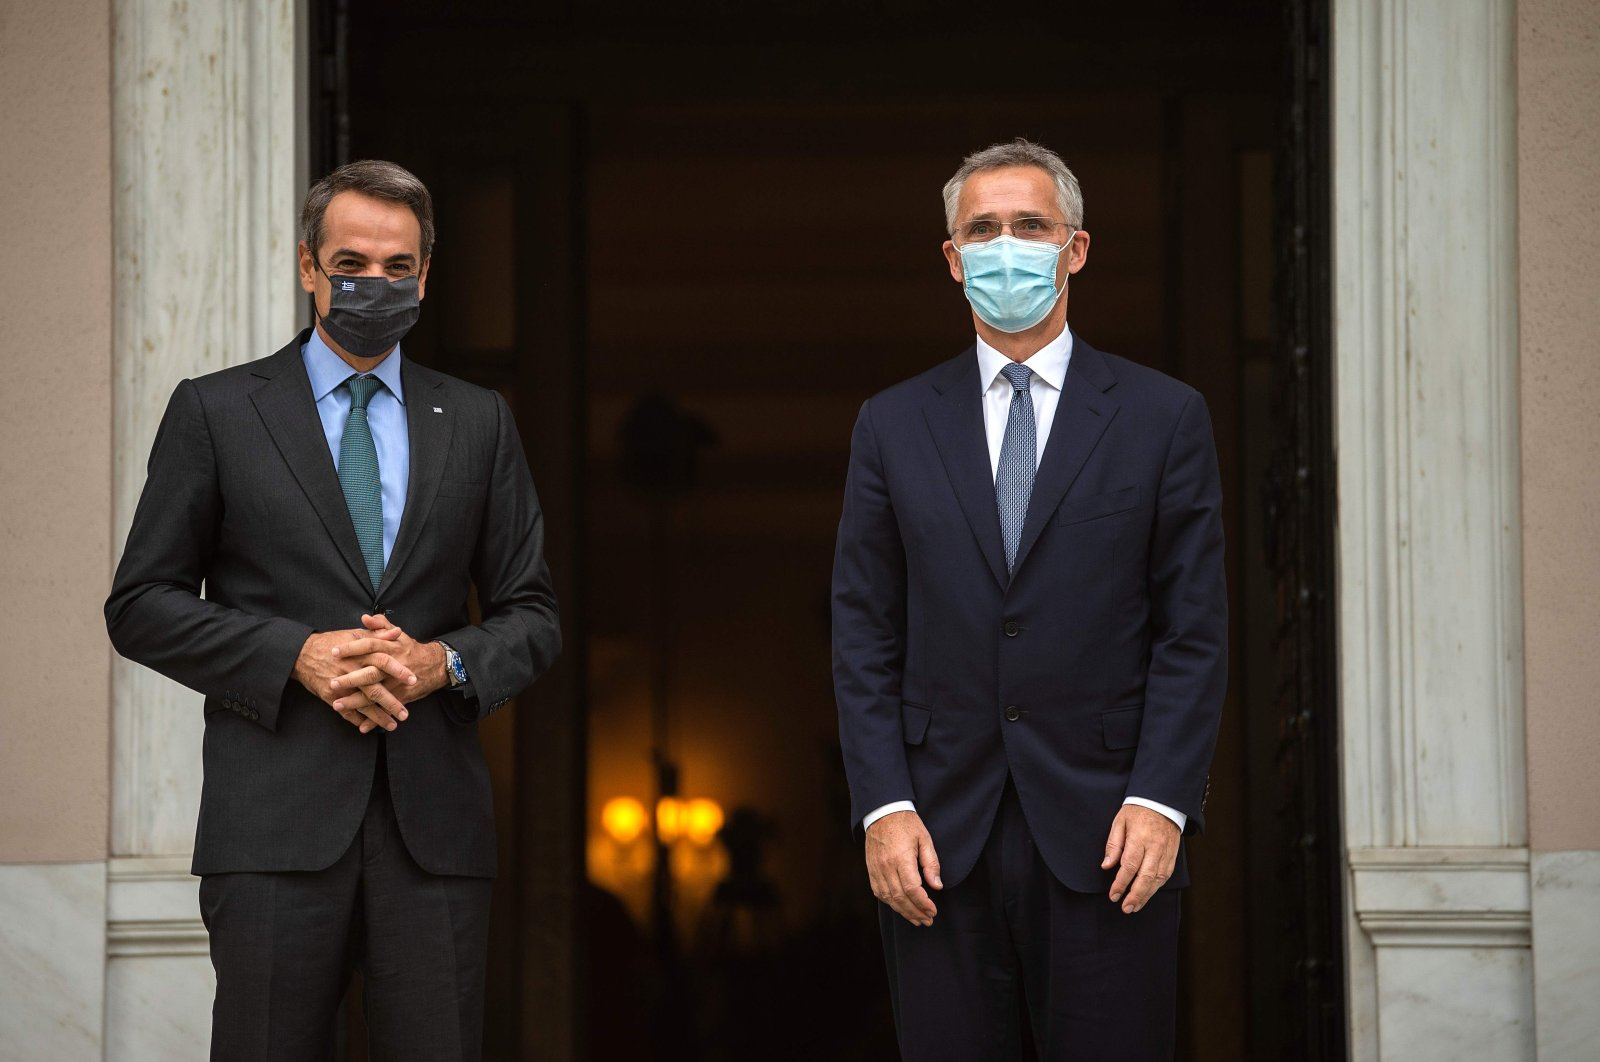 Greek Prime Minister Kyriakos Mitsotakis (L) welcomes NATO Secretary-General Jens Stoltenberg (R) before their meeting at the Maximos Mansion in Athens, Greece, Oct. 6, 2020. (AFP Photo)